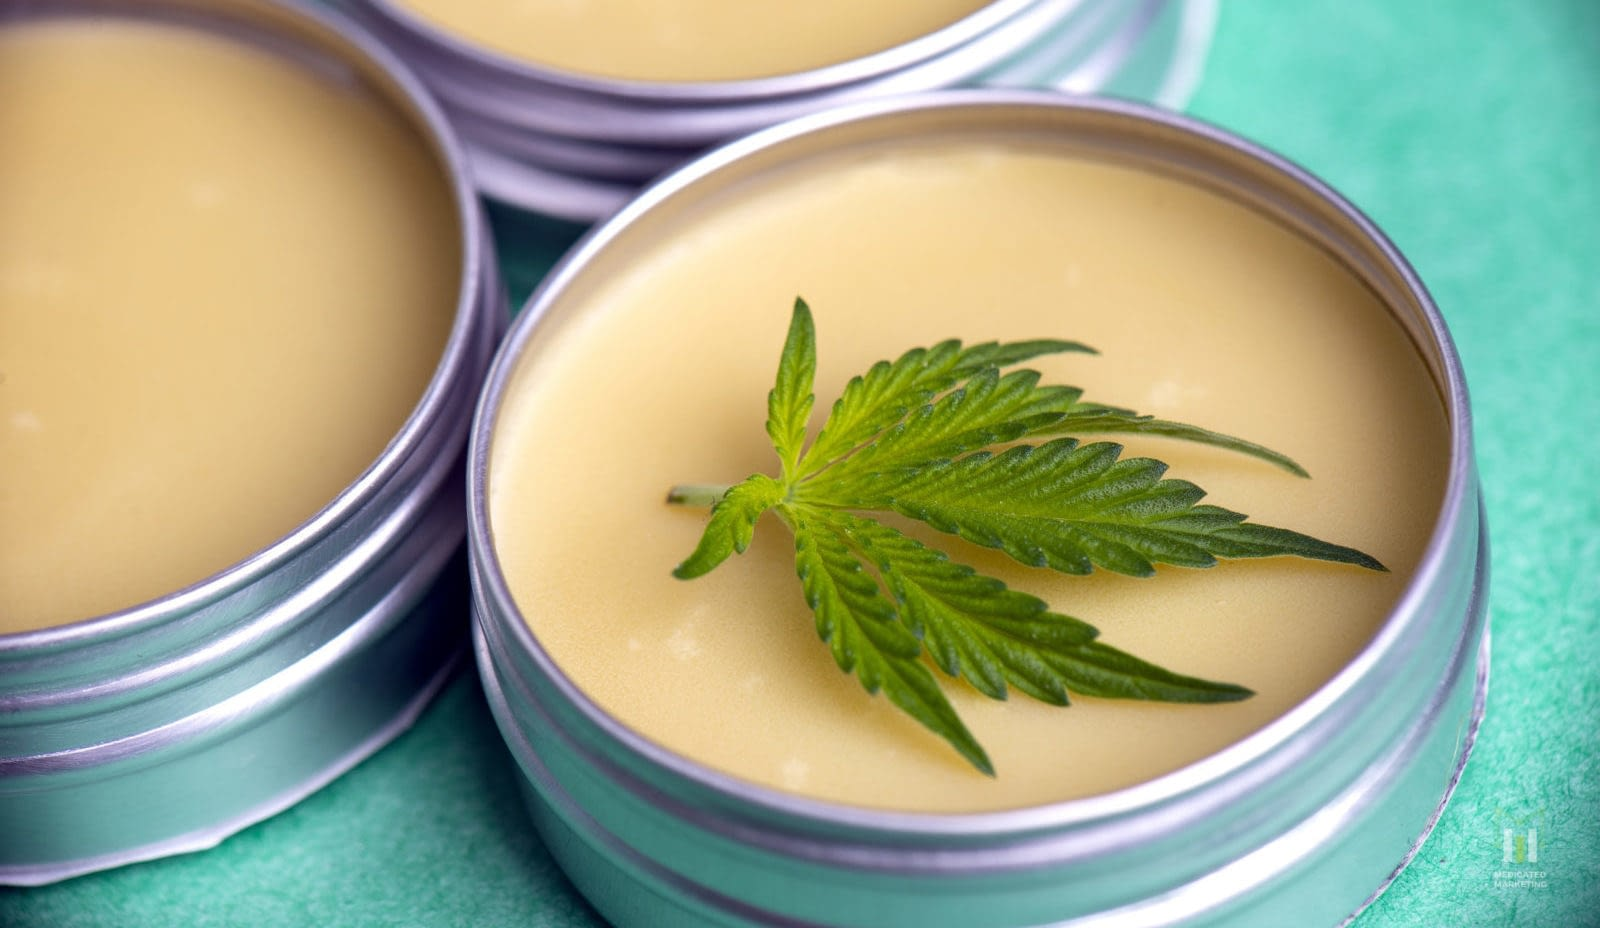 How to Successfully Market Your CBD Brand on Instagram